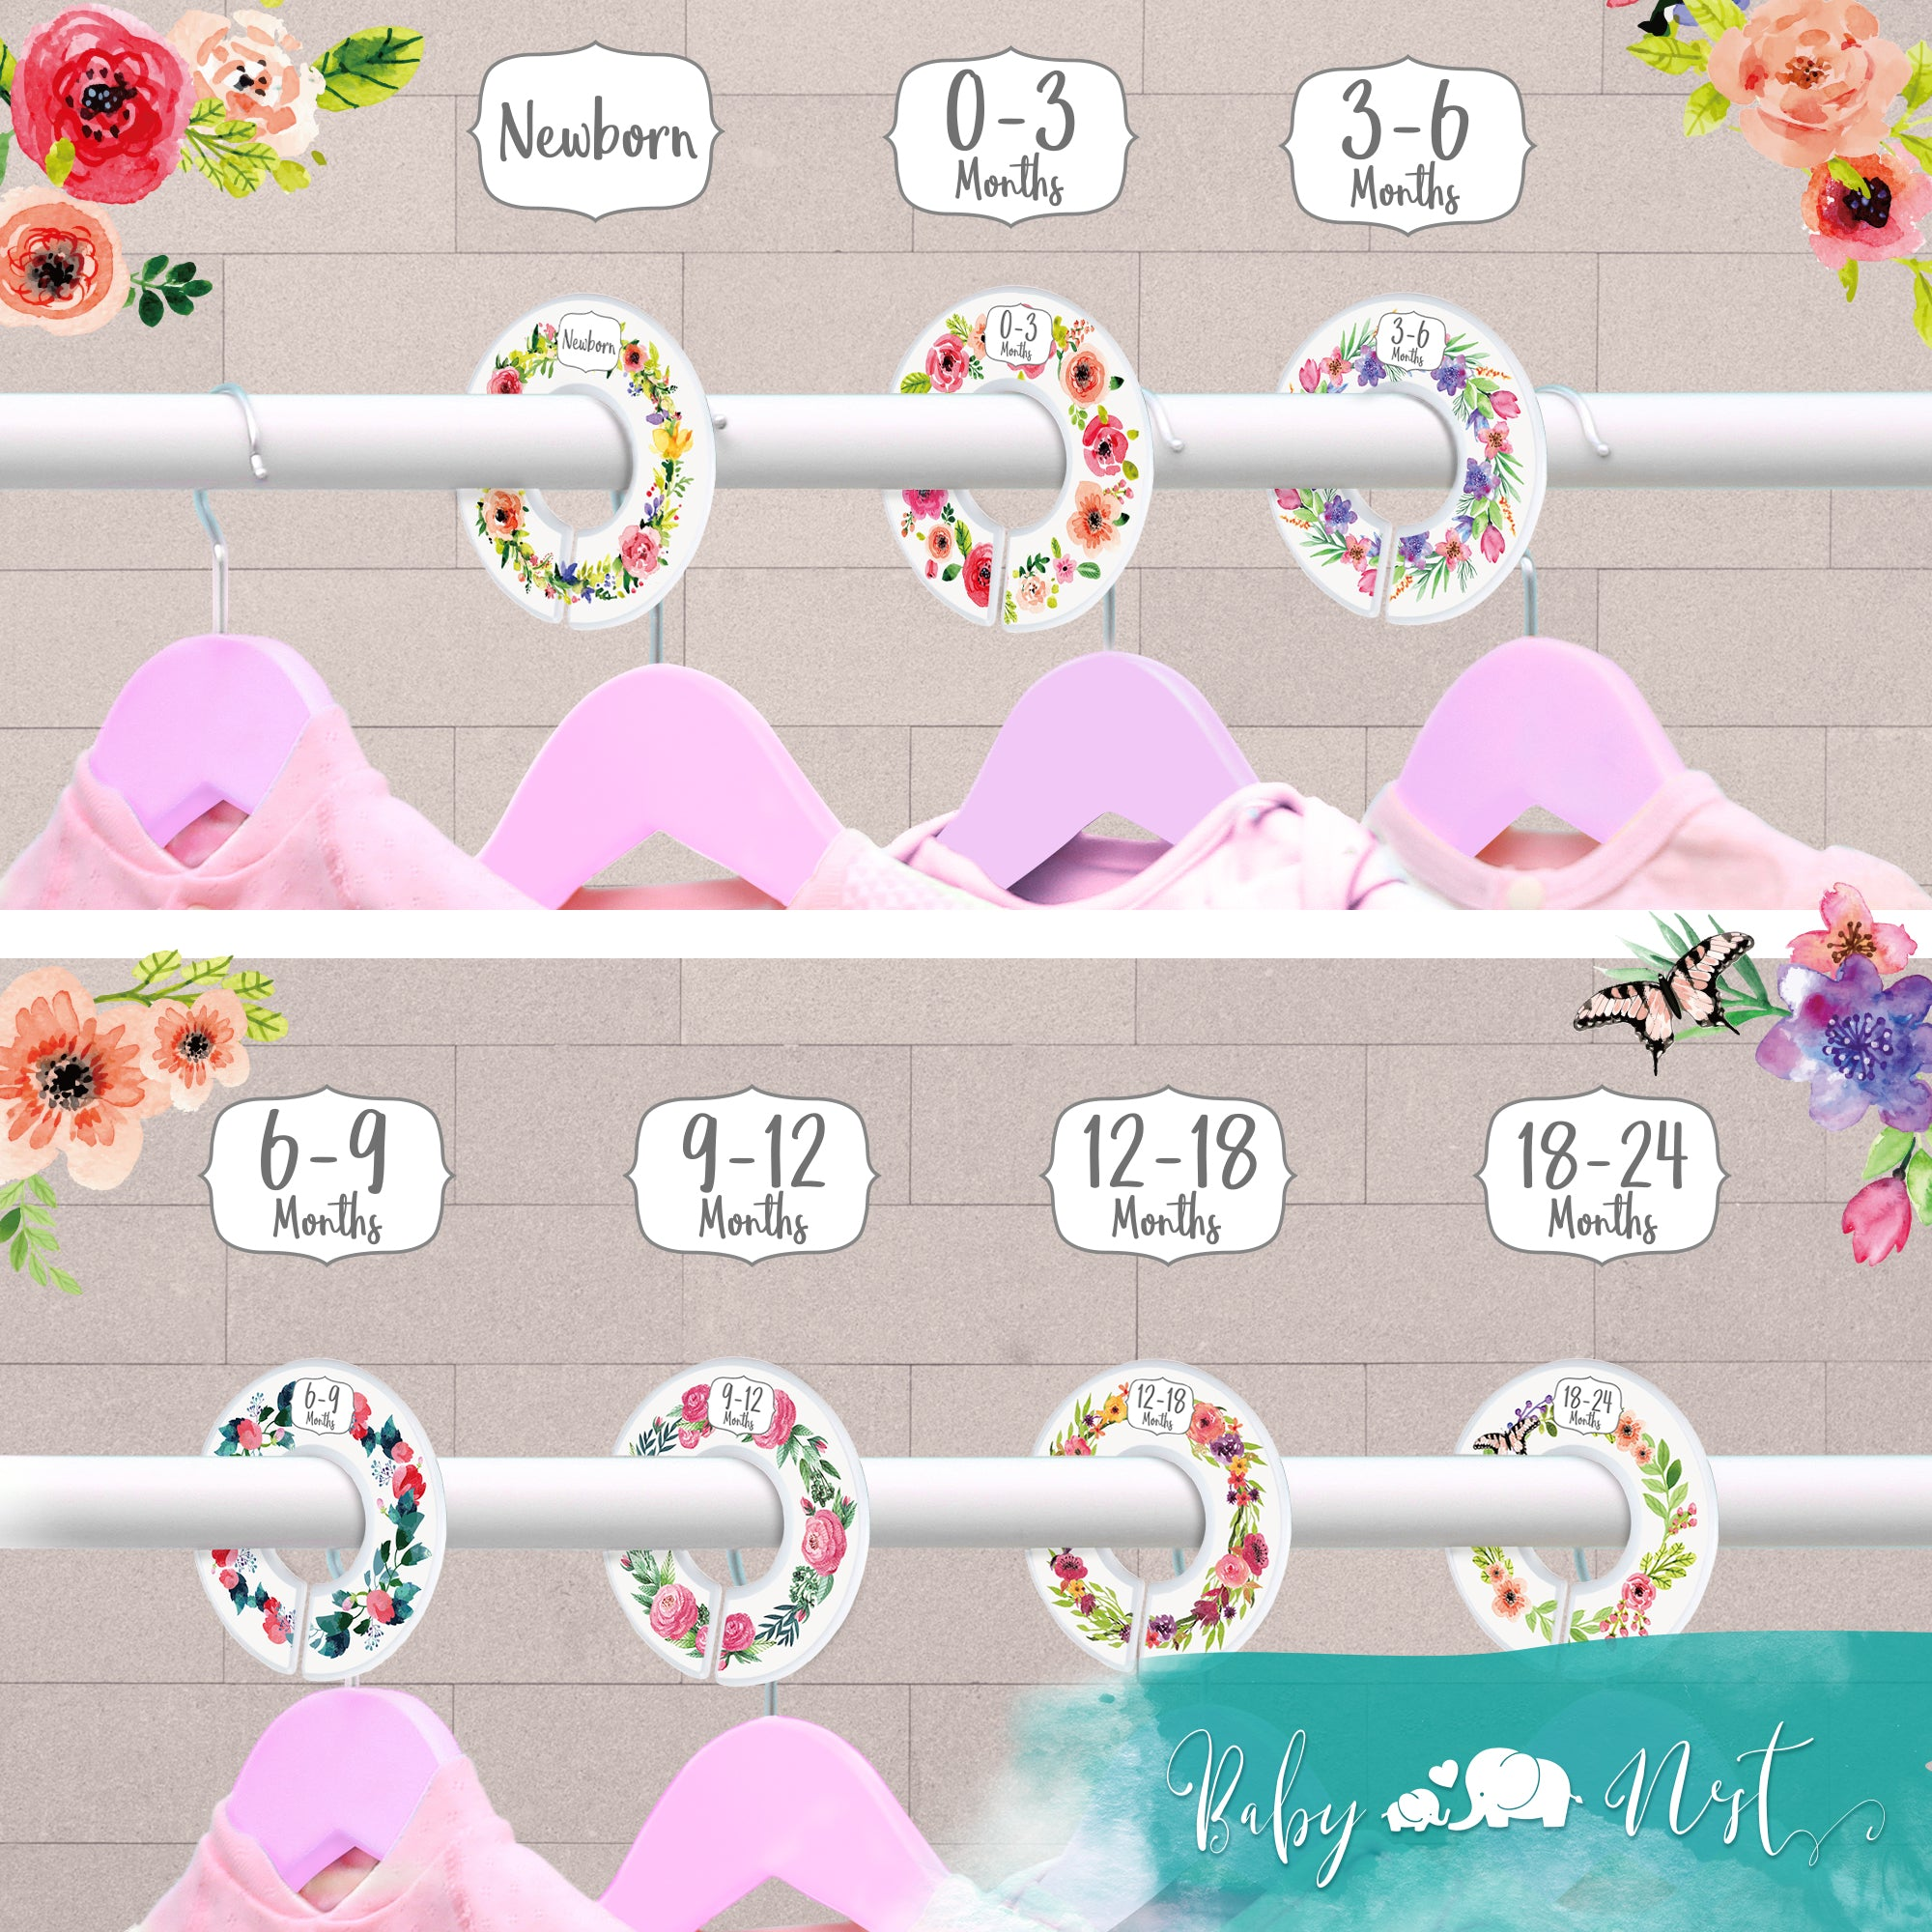 3a48b26d4e0c4 Baby Nest Designs Closet Dividers for Baby Clothes [Floral Bouquet] - 7x  Baby Clothing Size Age Dividers from Newborn Infant to 24 Months - Floral  Baby ...